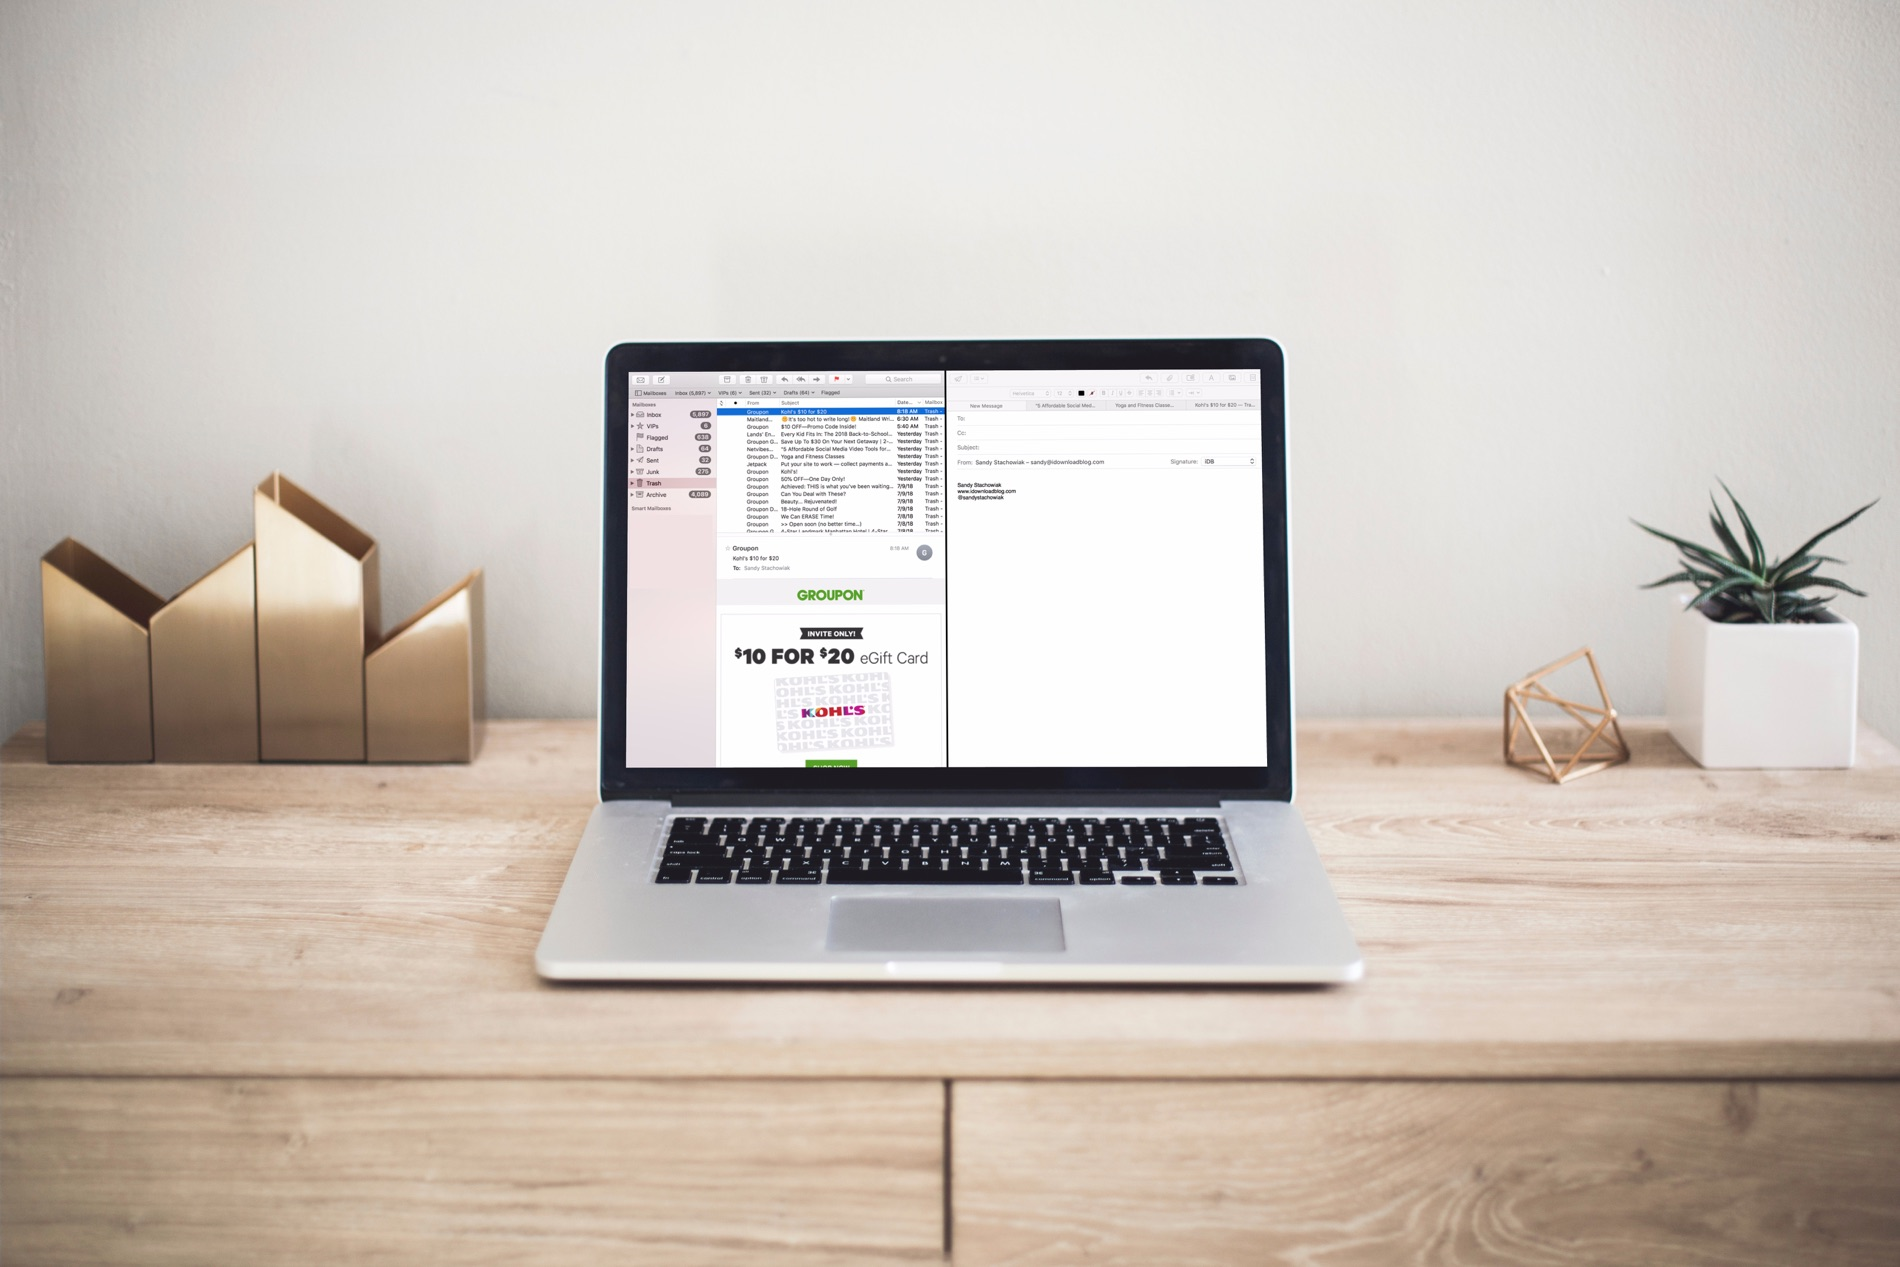 How to work with Mail in Split View on Mac